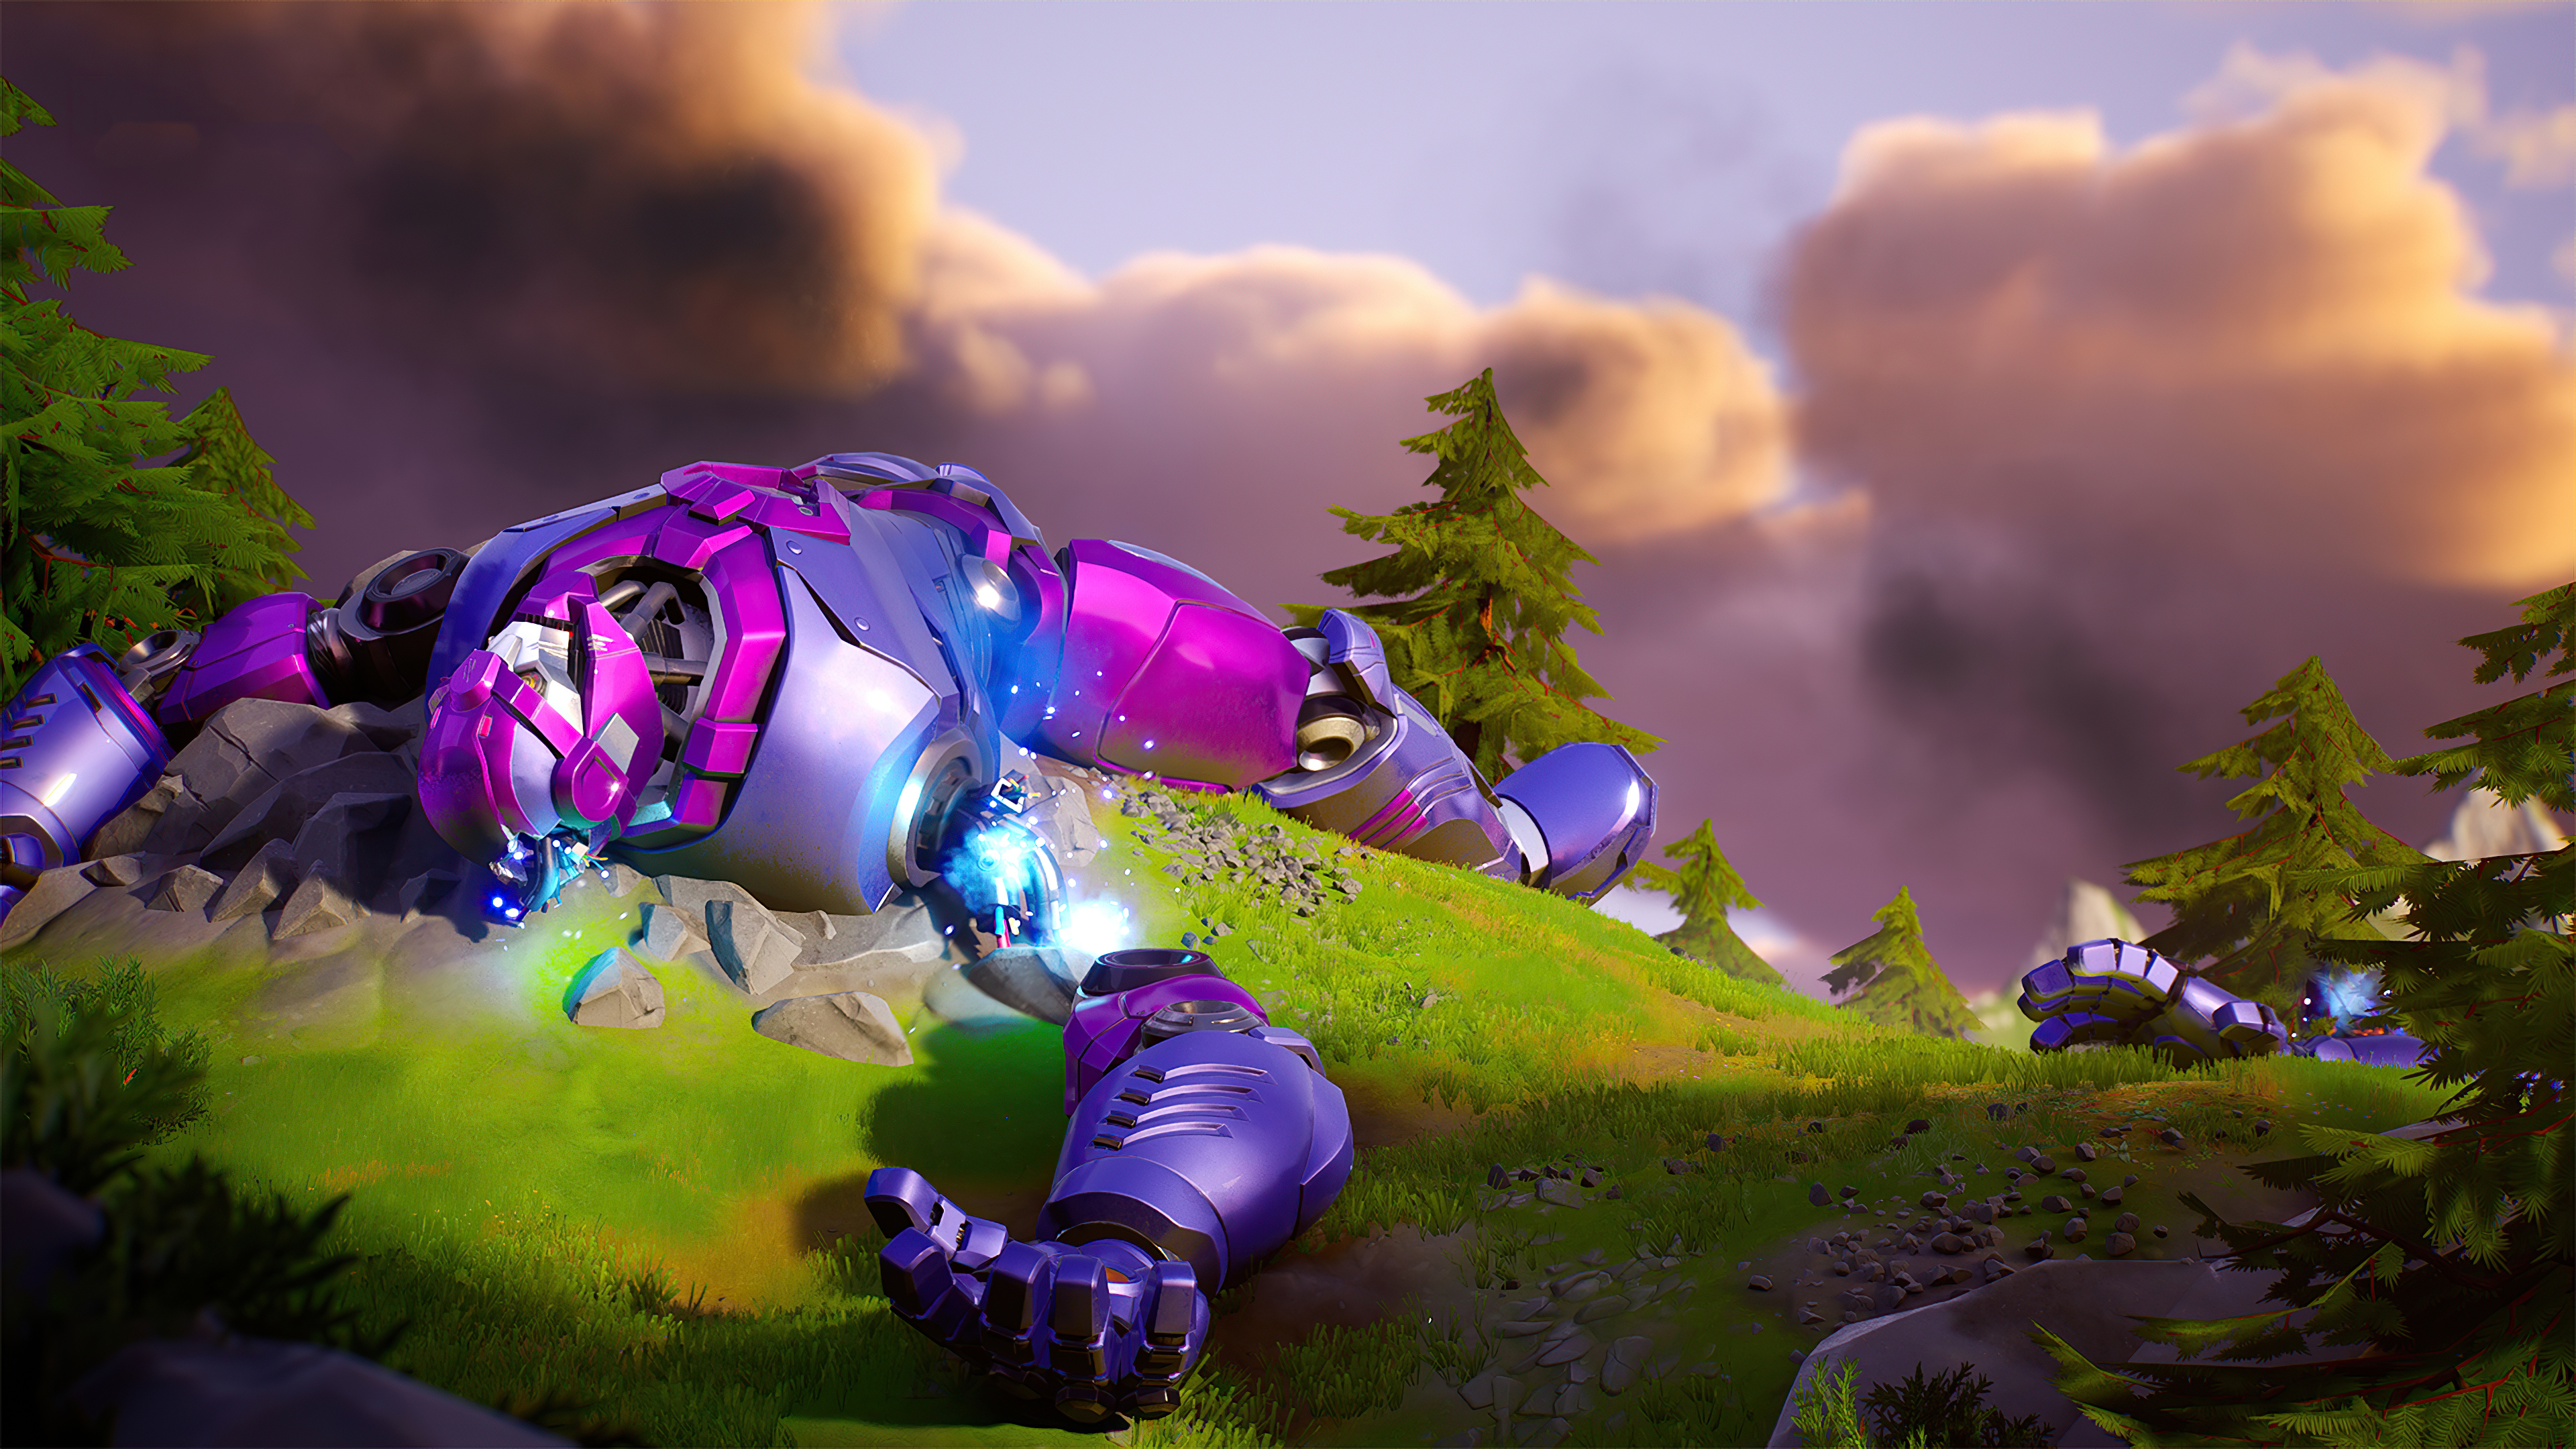 Fortnite 4k Ultra Hd Wallpaper Background Image 3840x2160 Id 1099124 Wallpaper Abyss